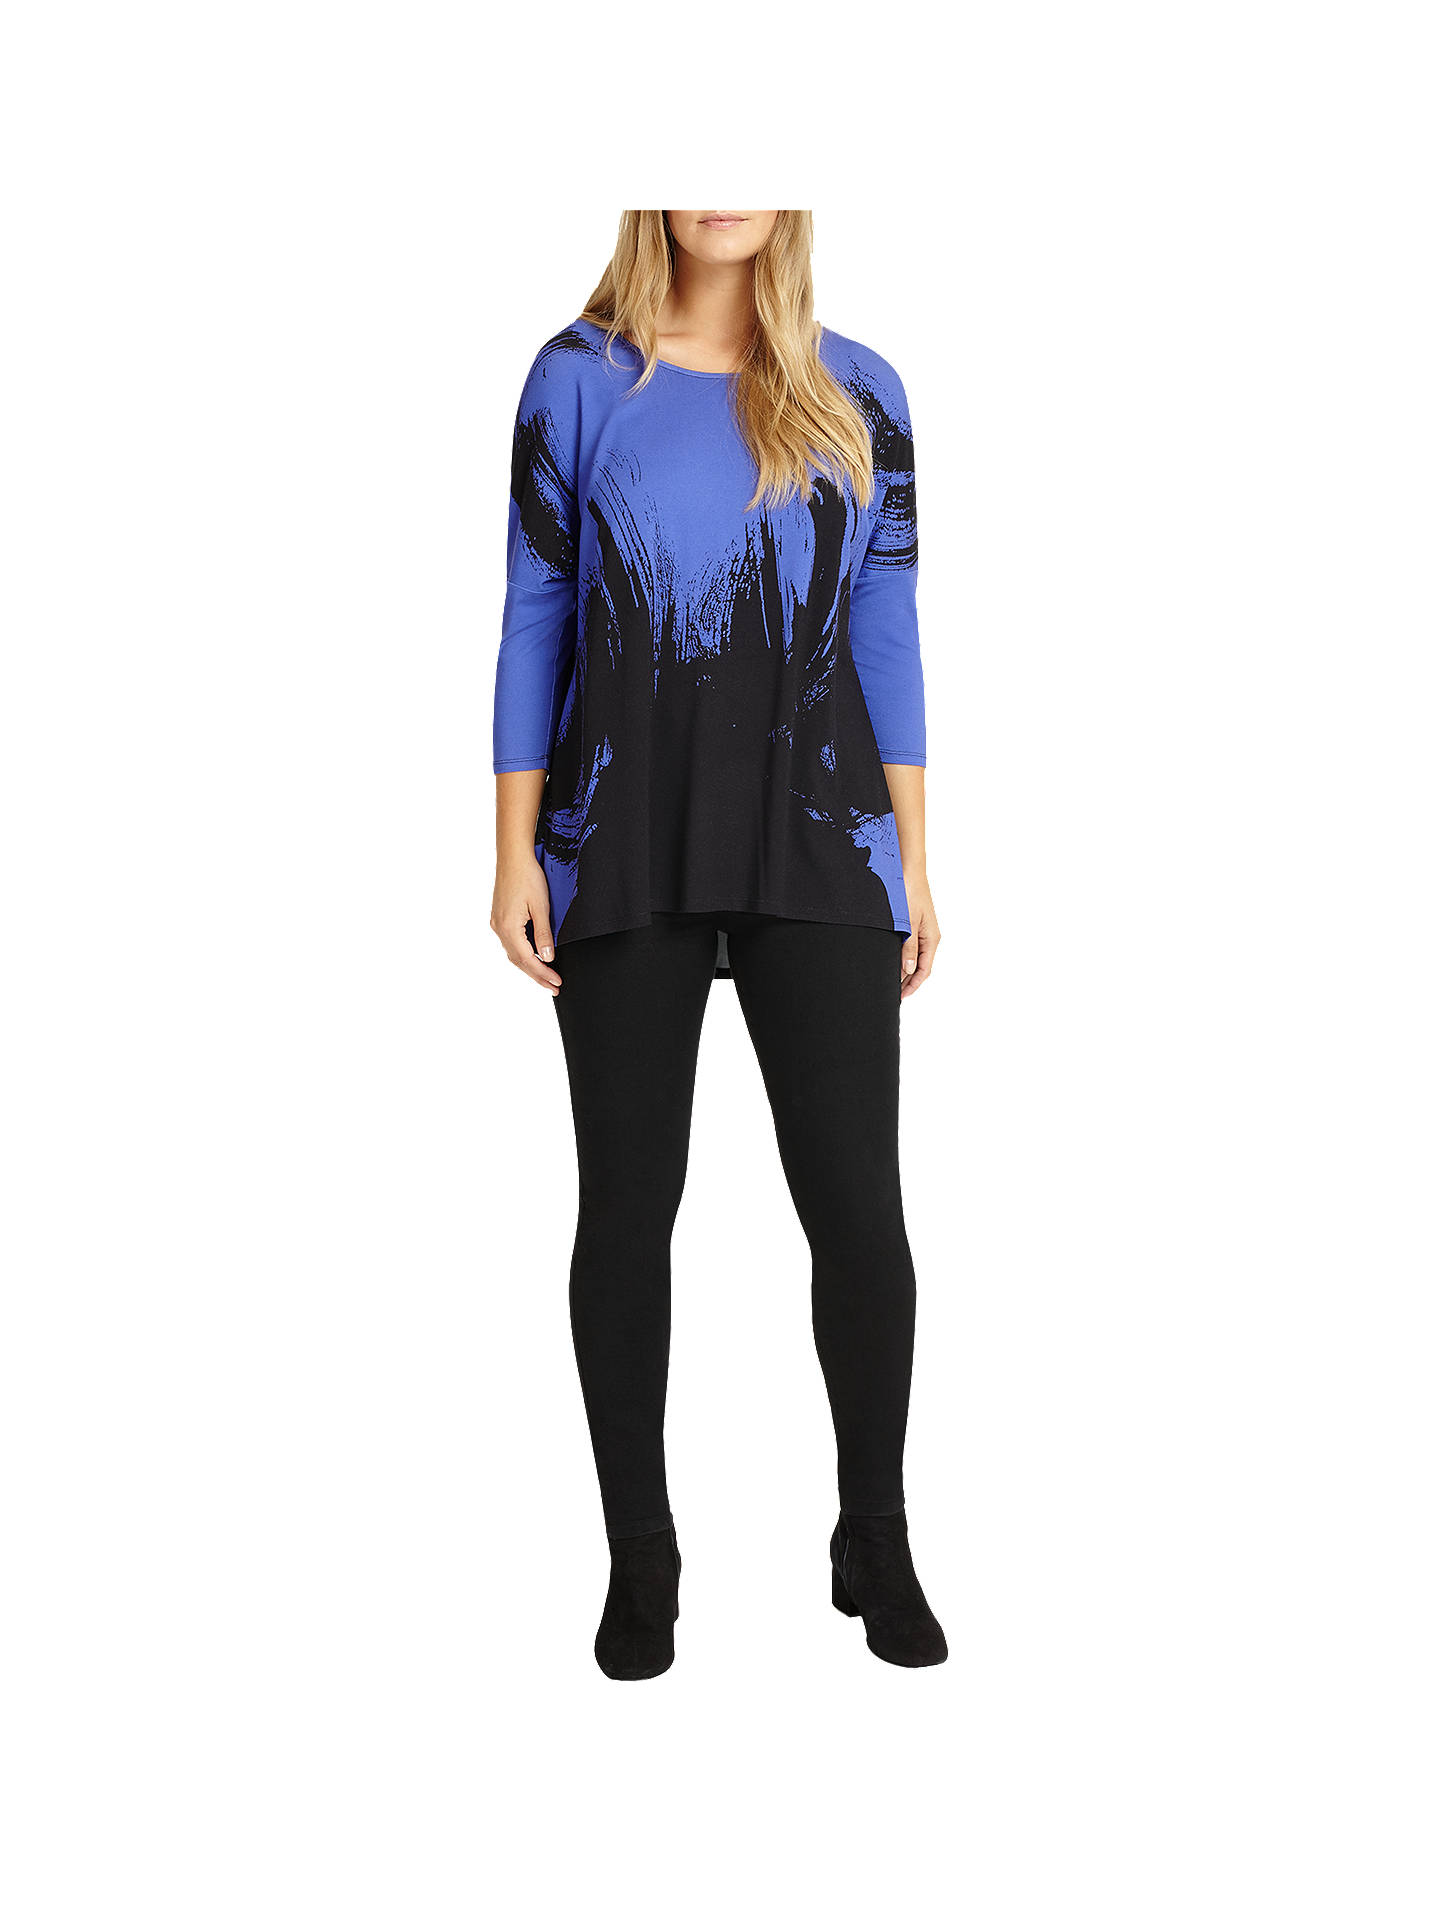 BuyStudio 8 Romy Abstract Top, Blue/Black, 12 Online at johnlewis.com